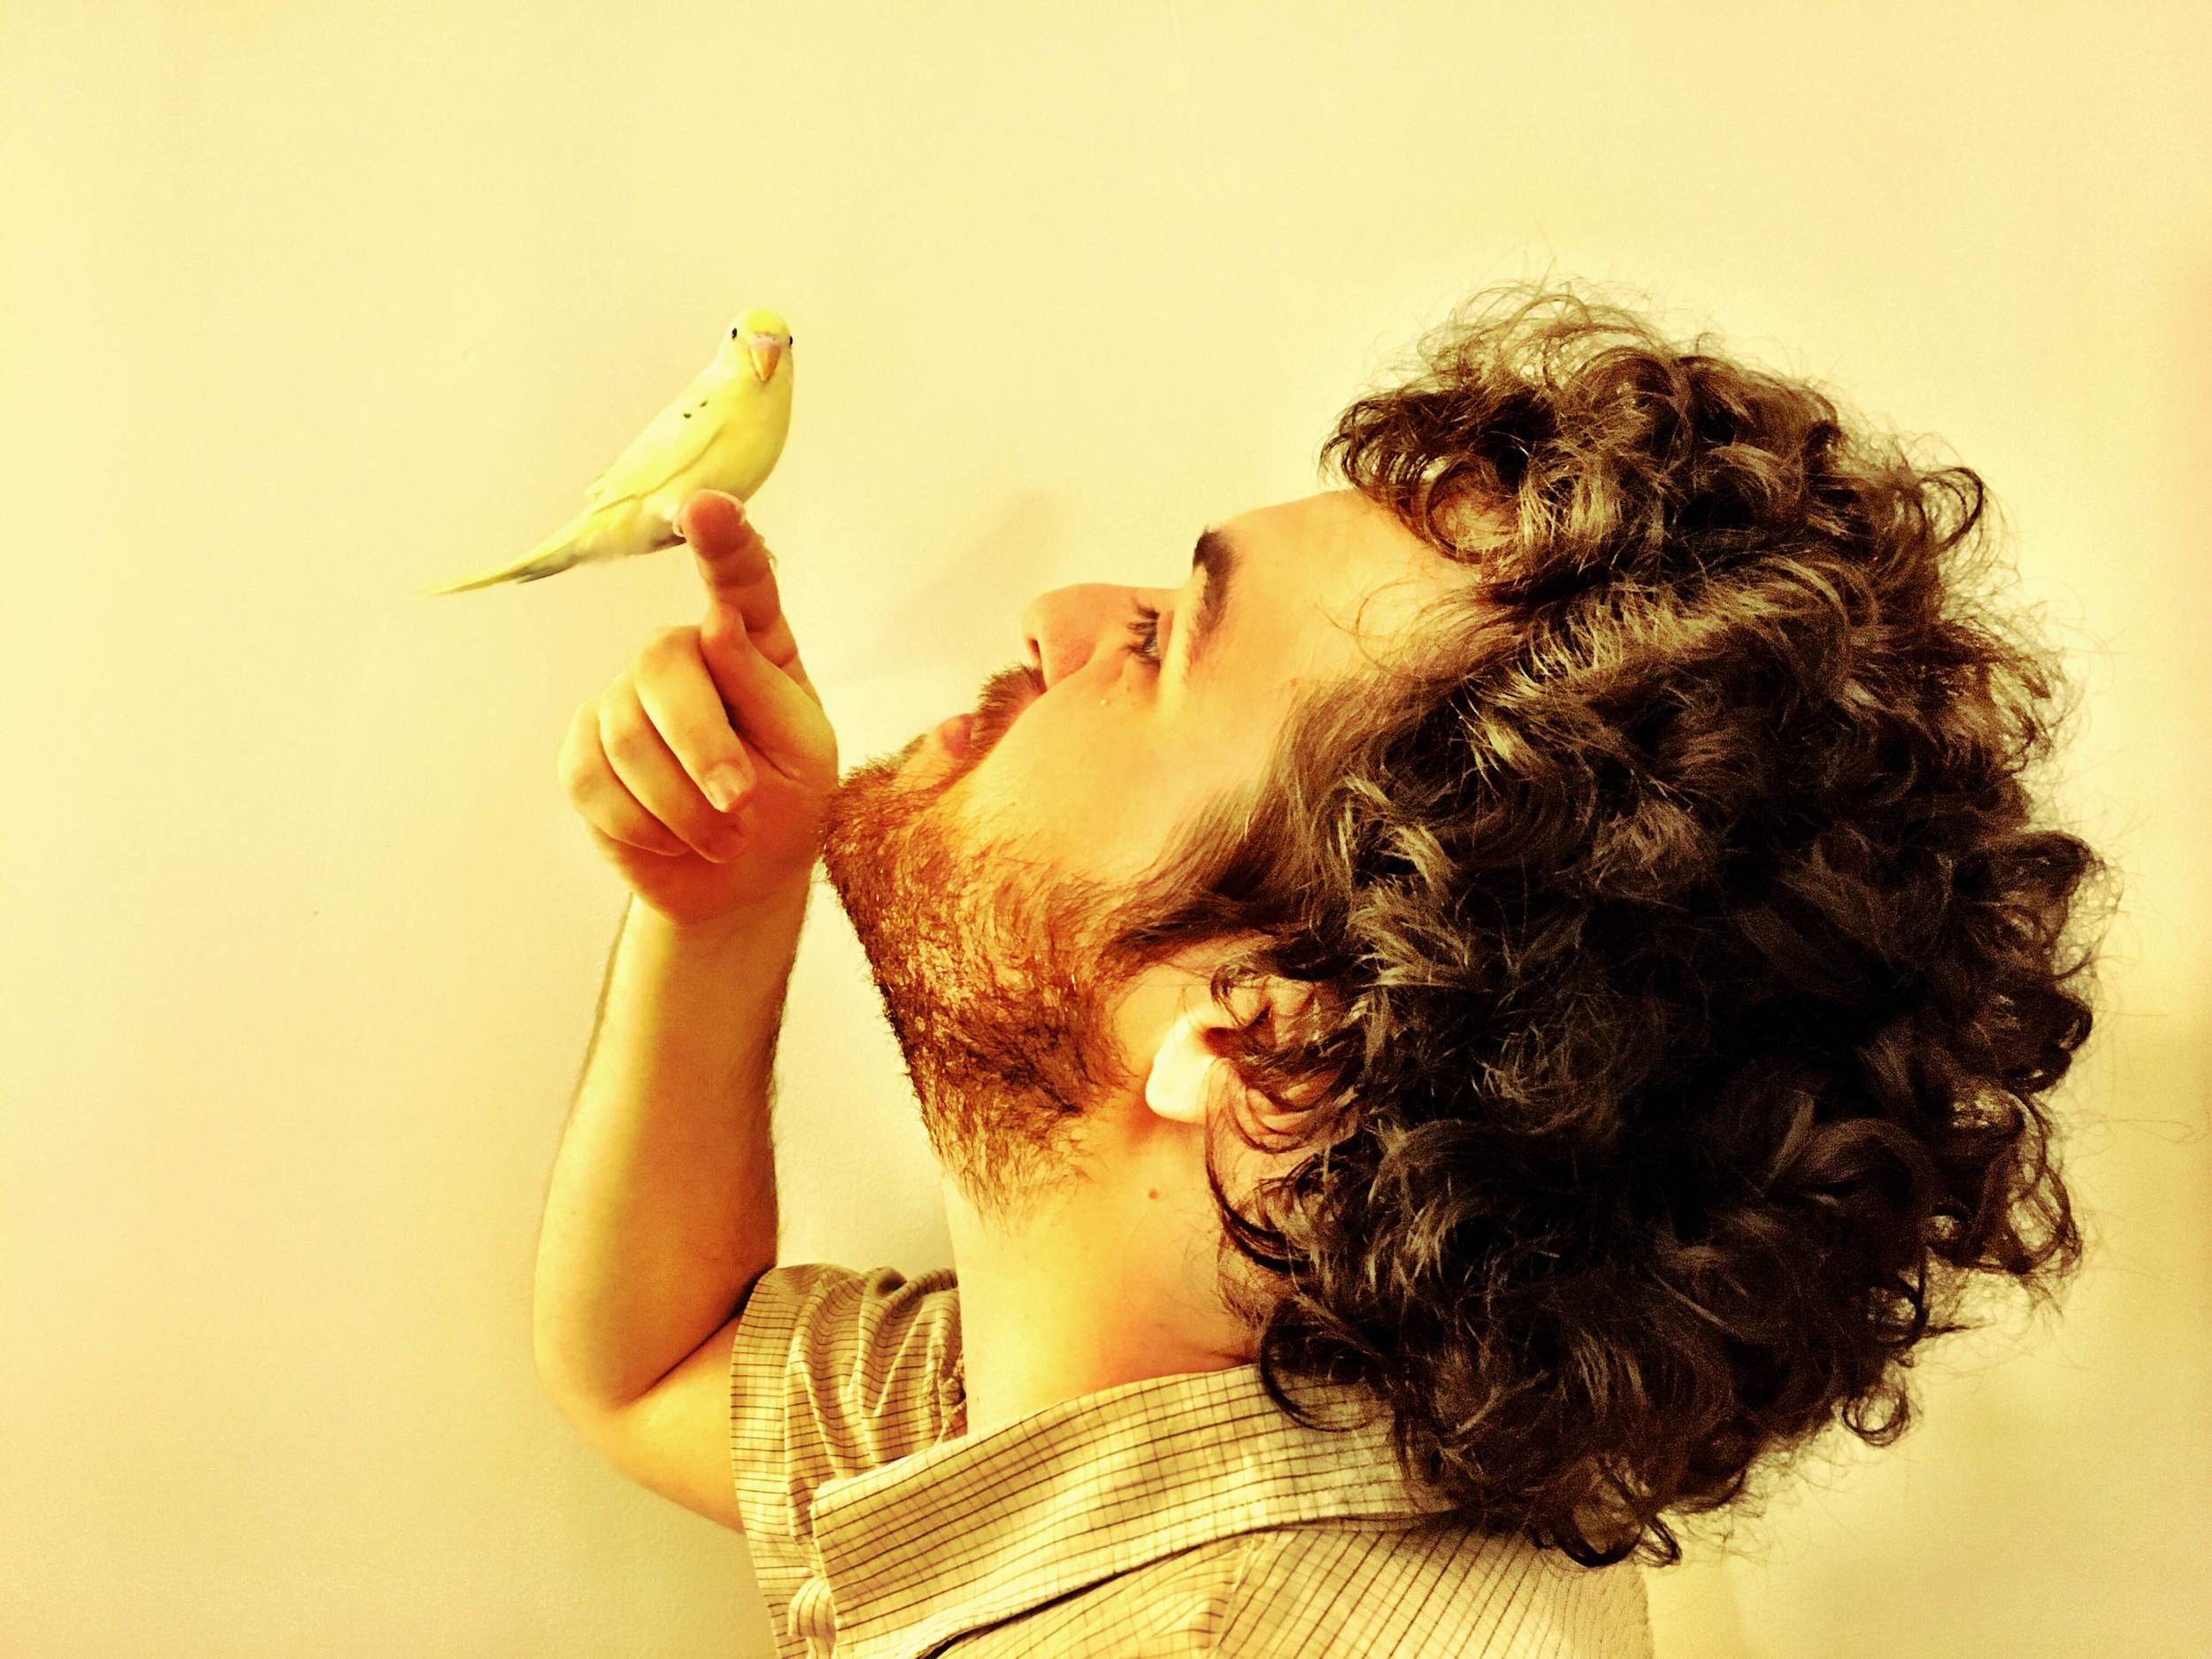 Louis and his Bird